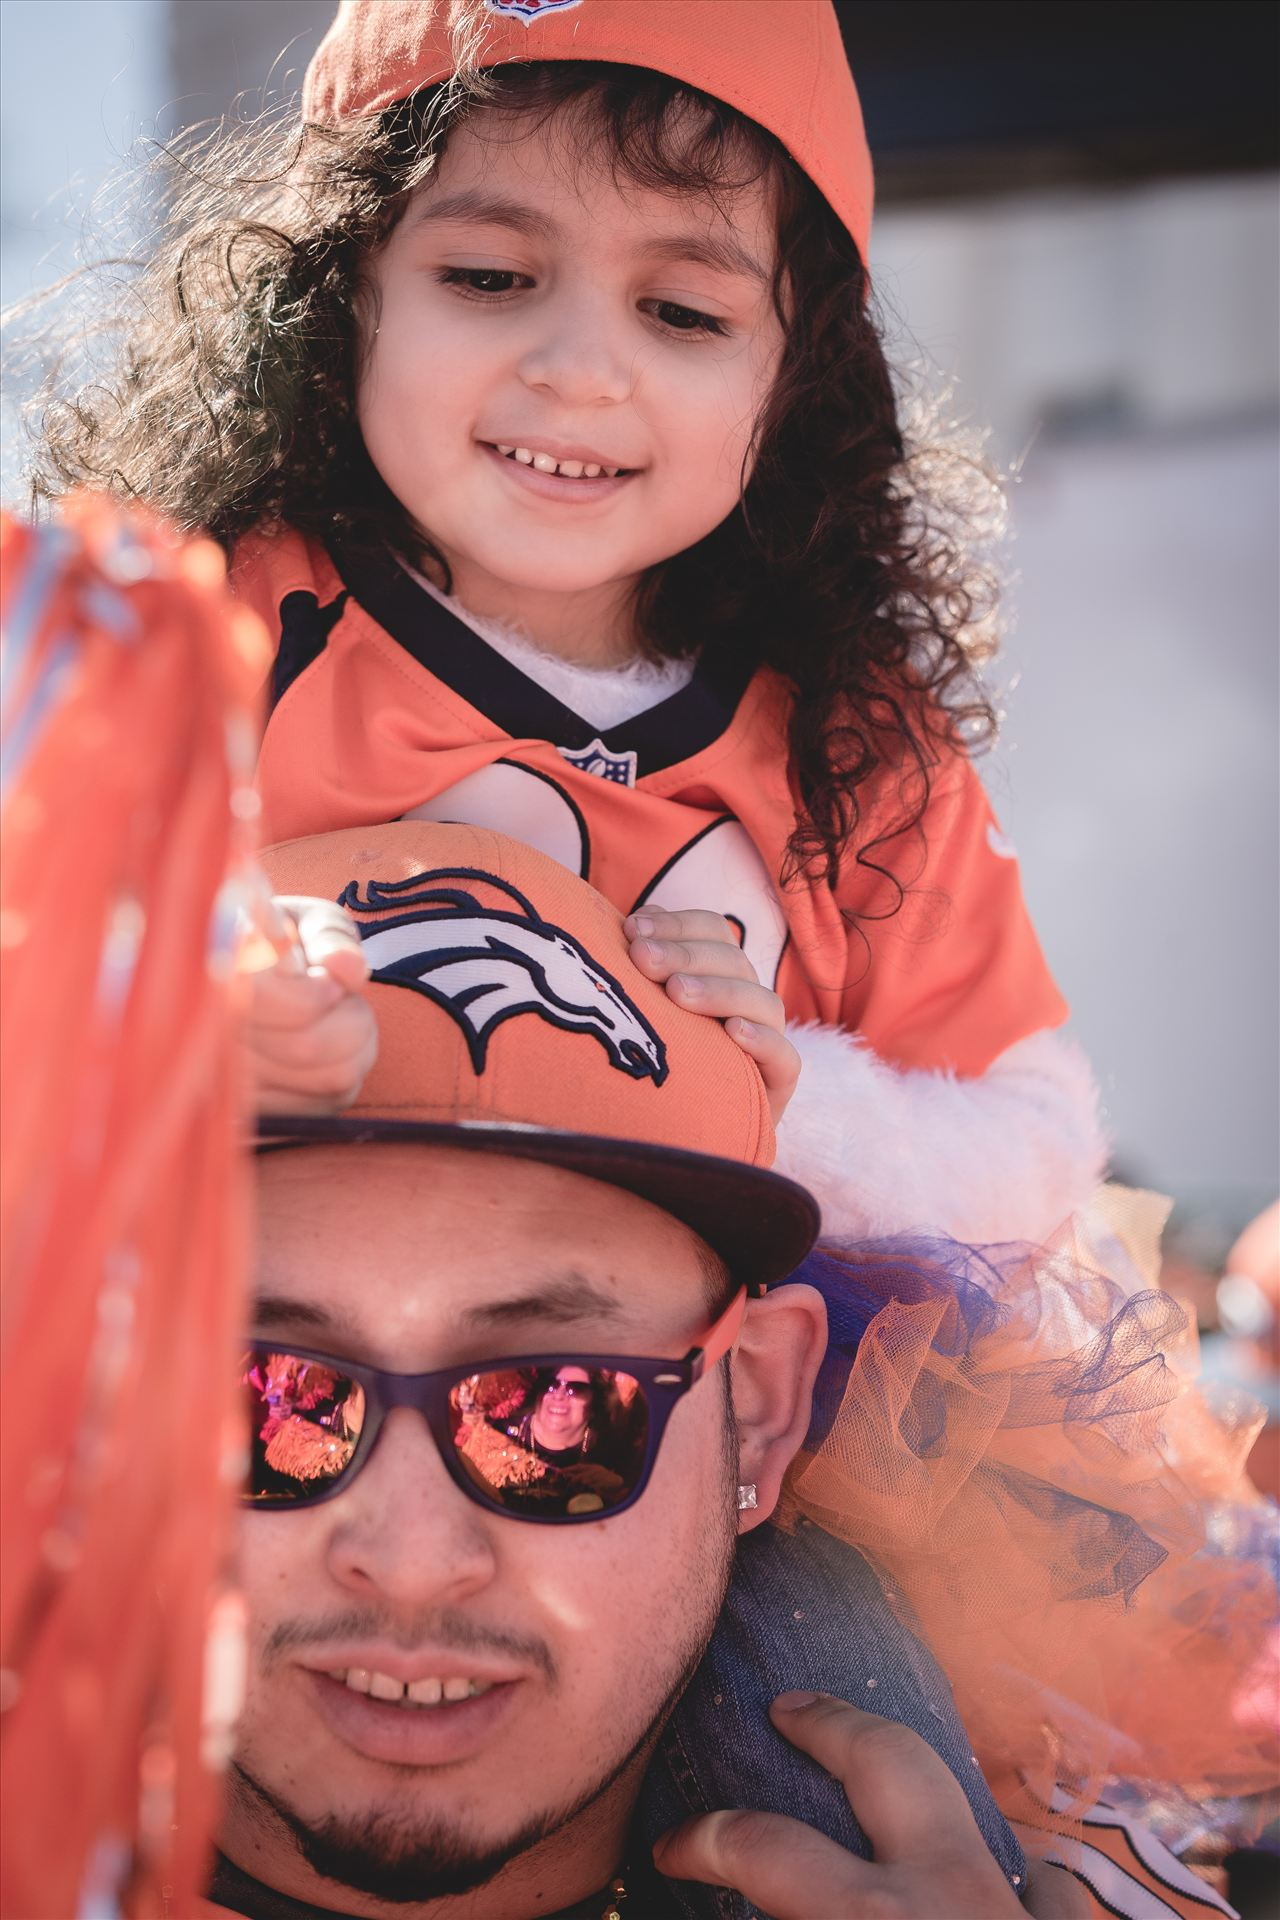 Father Daughter Broncos Fans - If you know who these two are... please contact me! I'd love to pass their photo long to them. by D Scott Smith